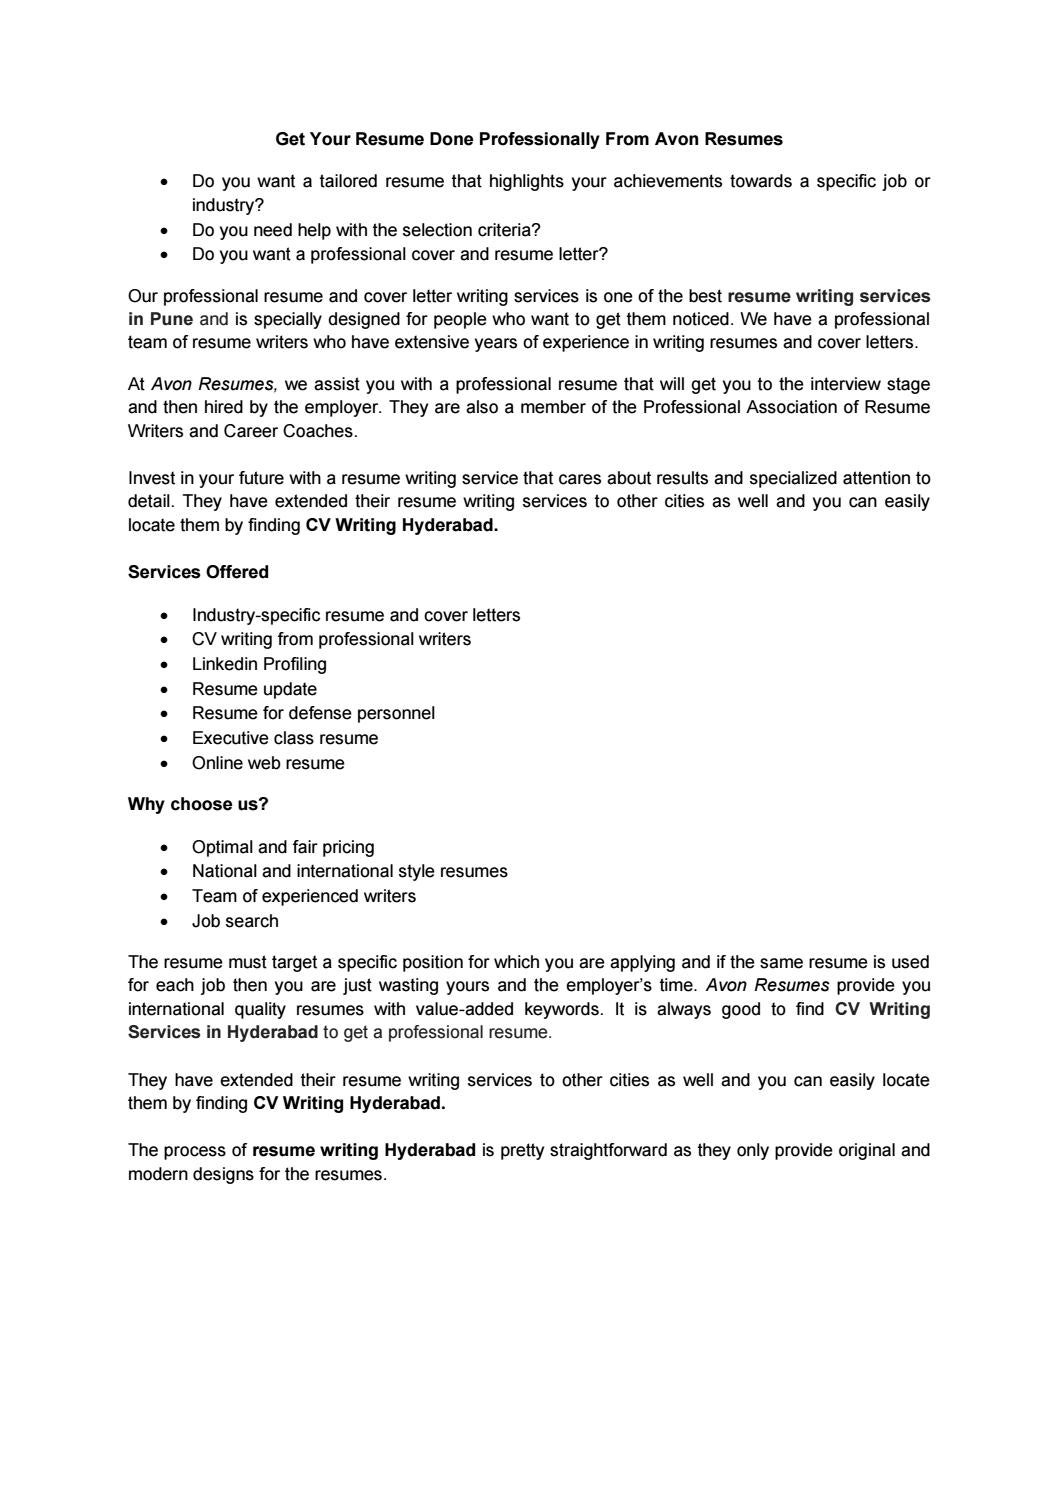 Resume Update Services : Thompson Resume Writing Co ...